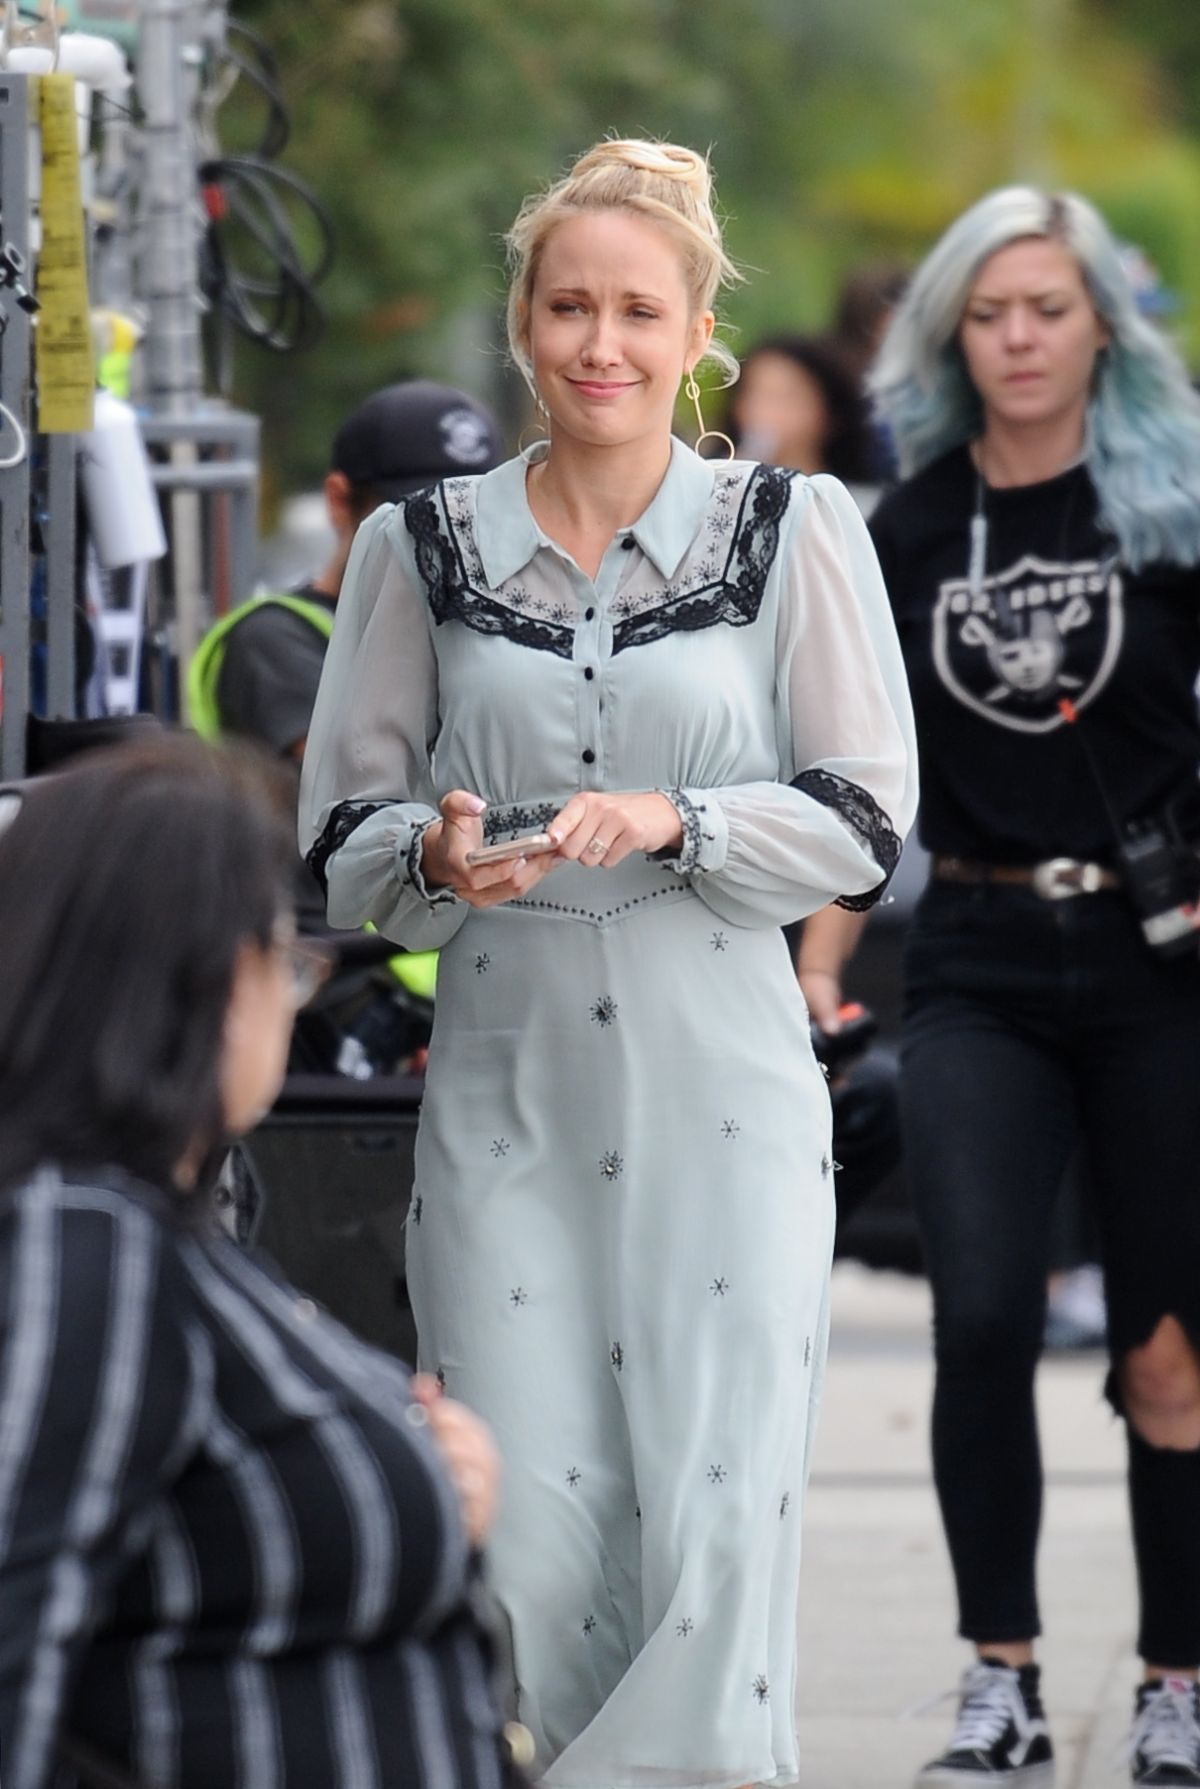 Anna Camp Wedding.Anna Camp Filming Scenes For Her Upcoming Comedy Movie The Wedding